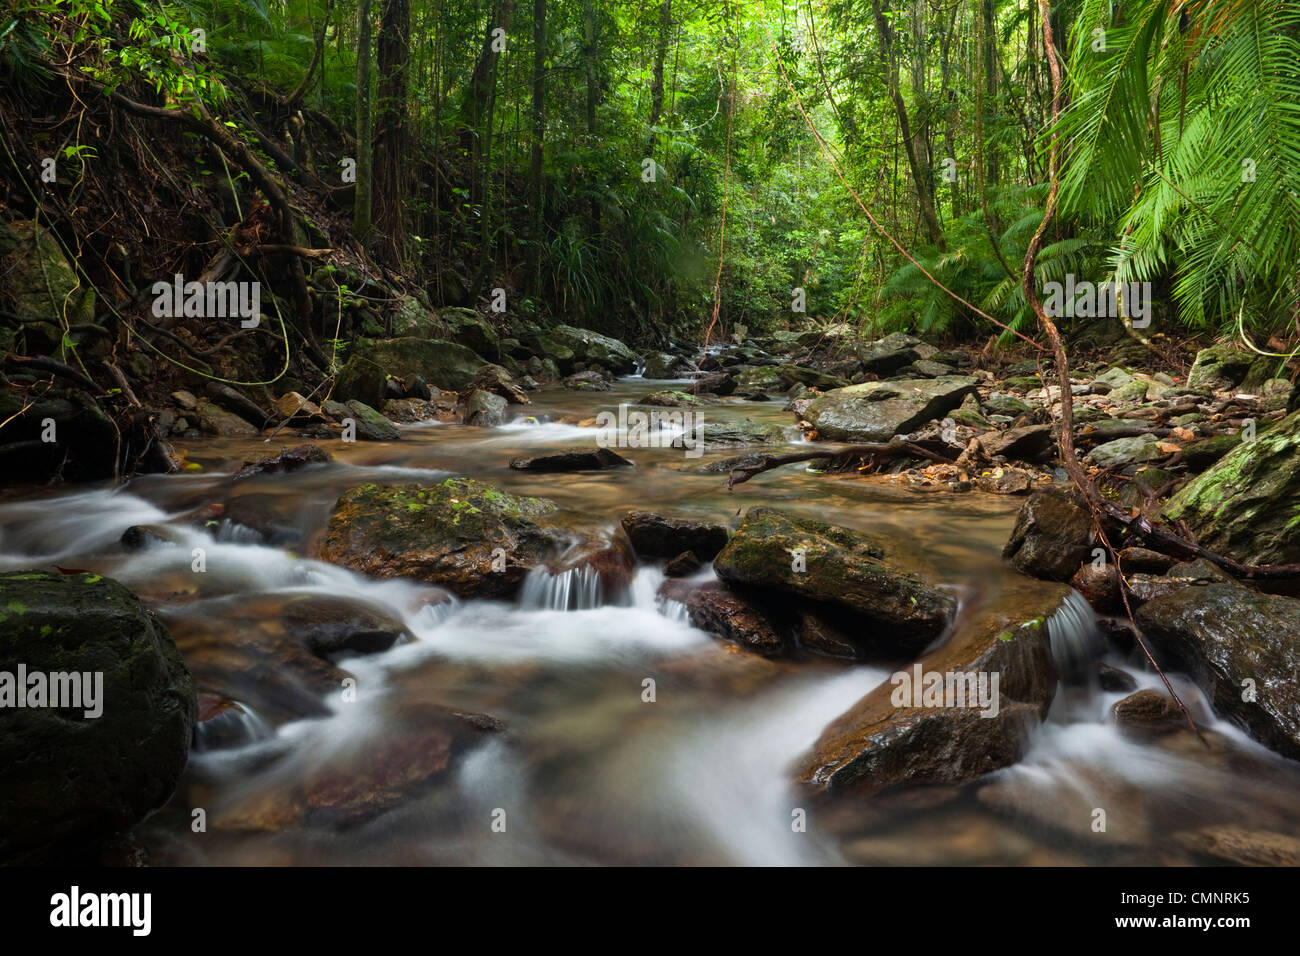 Rainforest creek at Crystal Cascades - a popular freshwater swimming hole near Cairns, Queensland, Australia - Stock Image